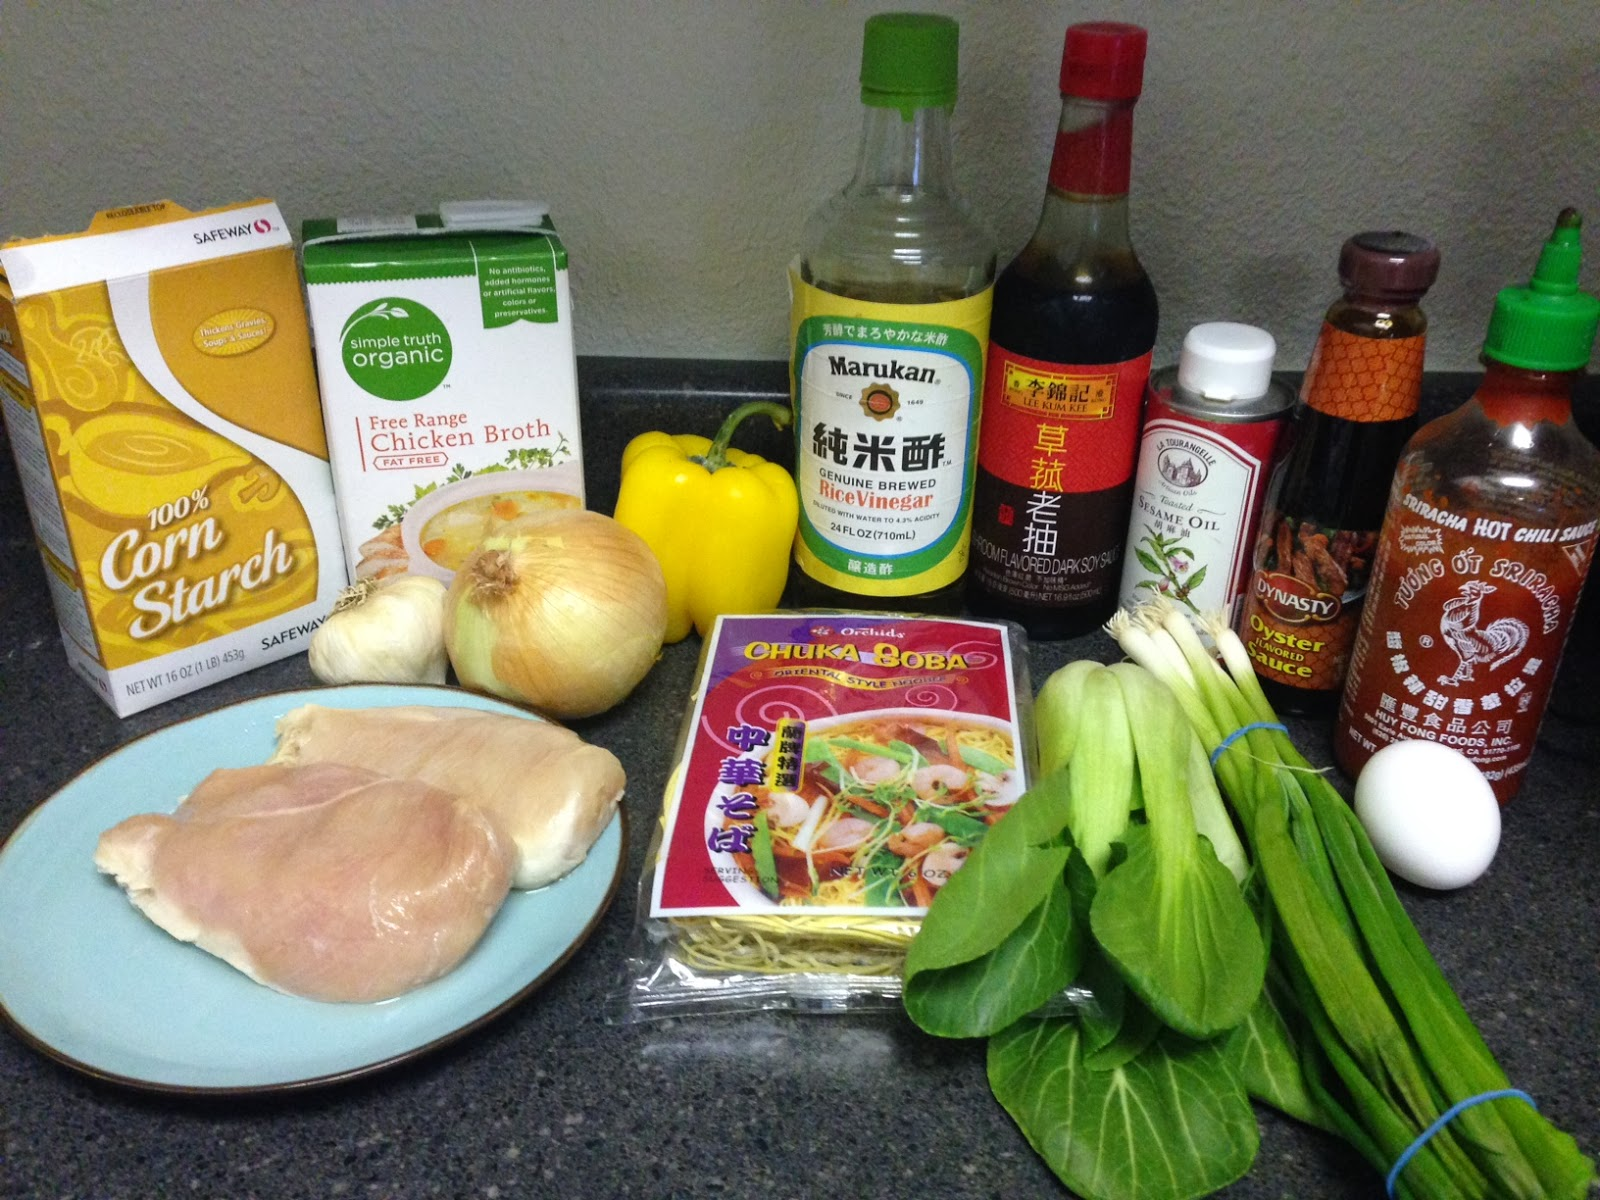 Courtney Pins: Saucy Chicken Stir Fry with Ramen Noodles and Bok Choy